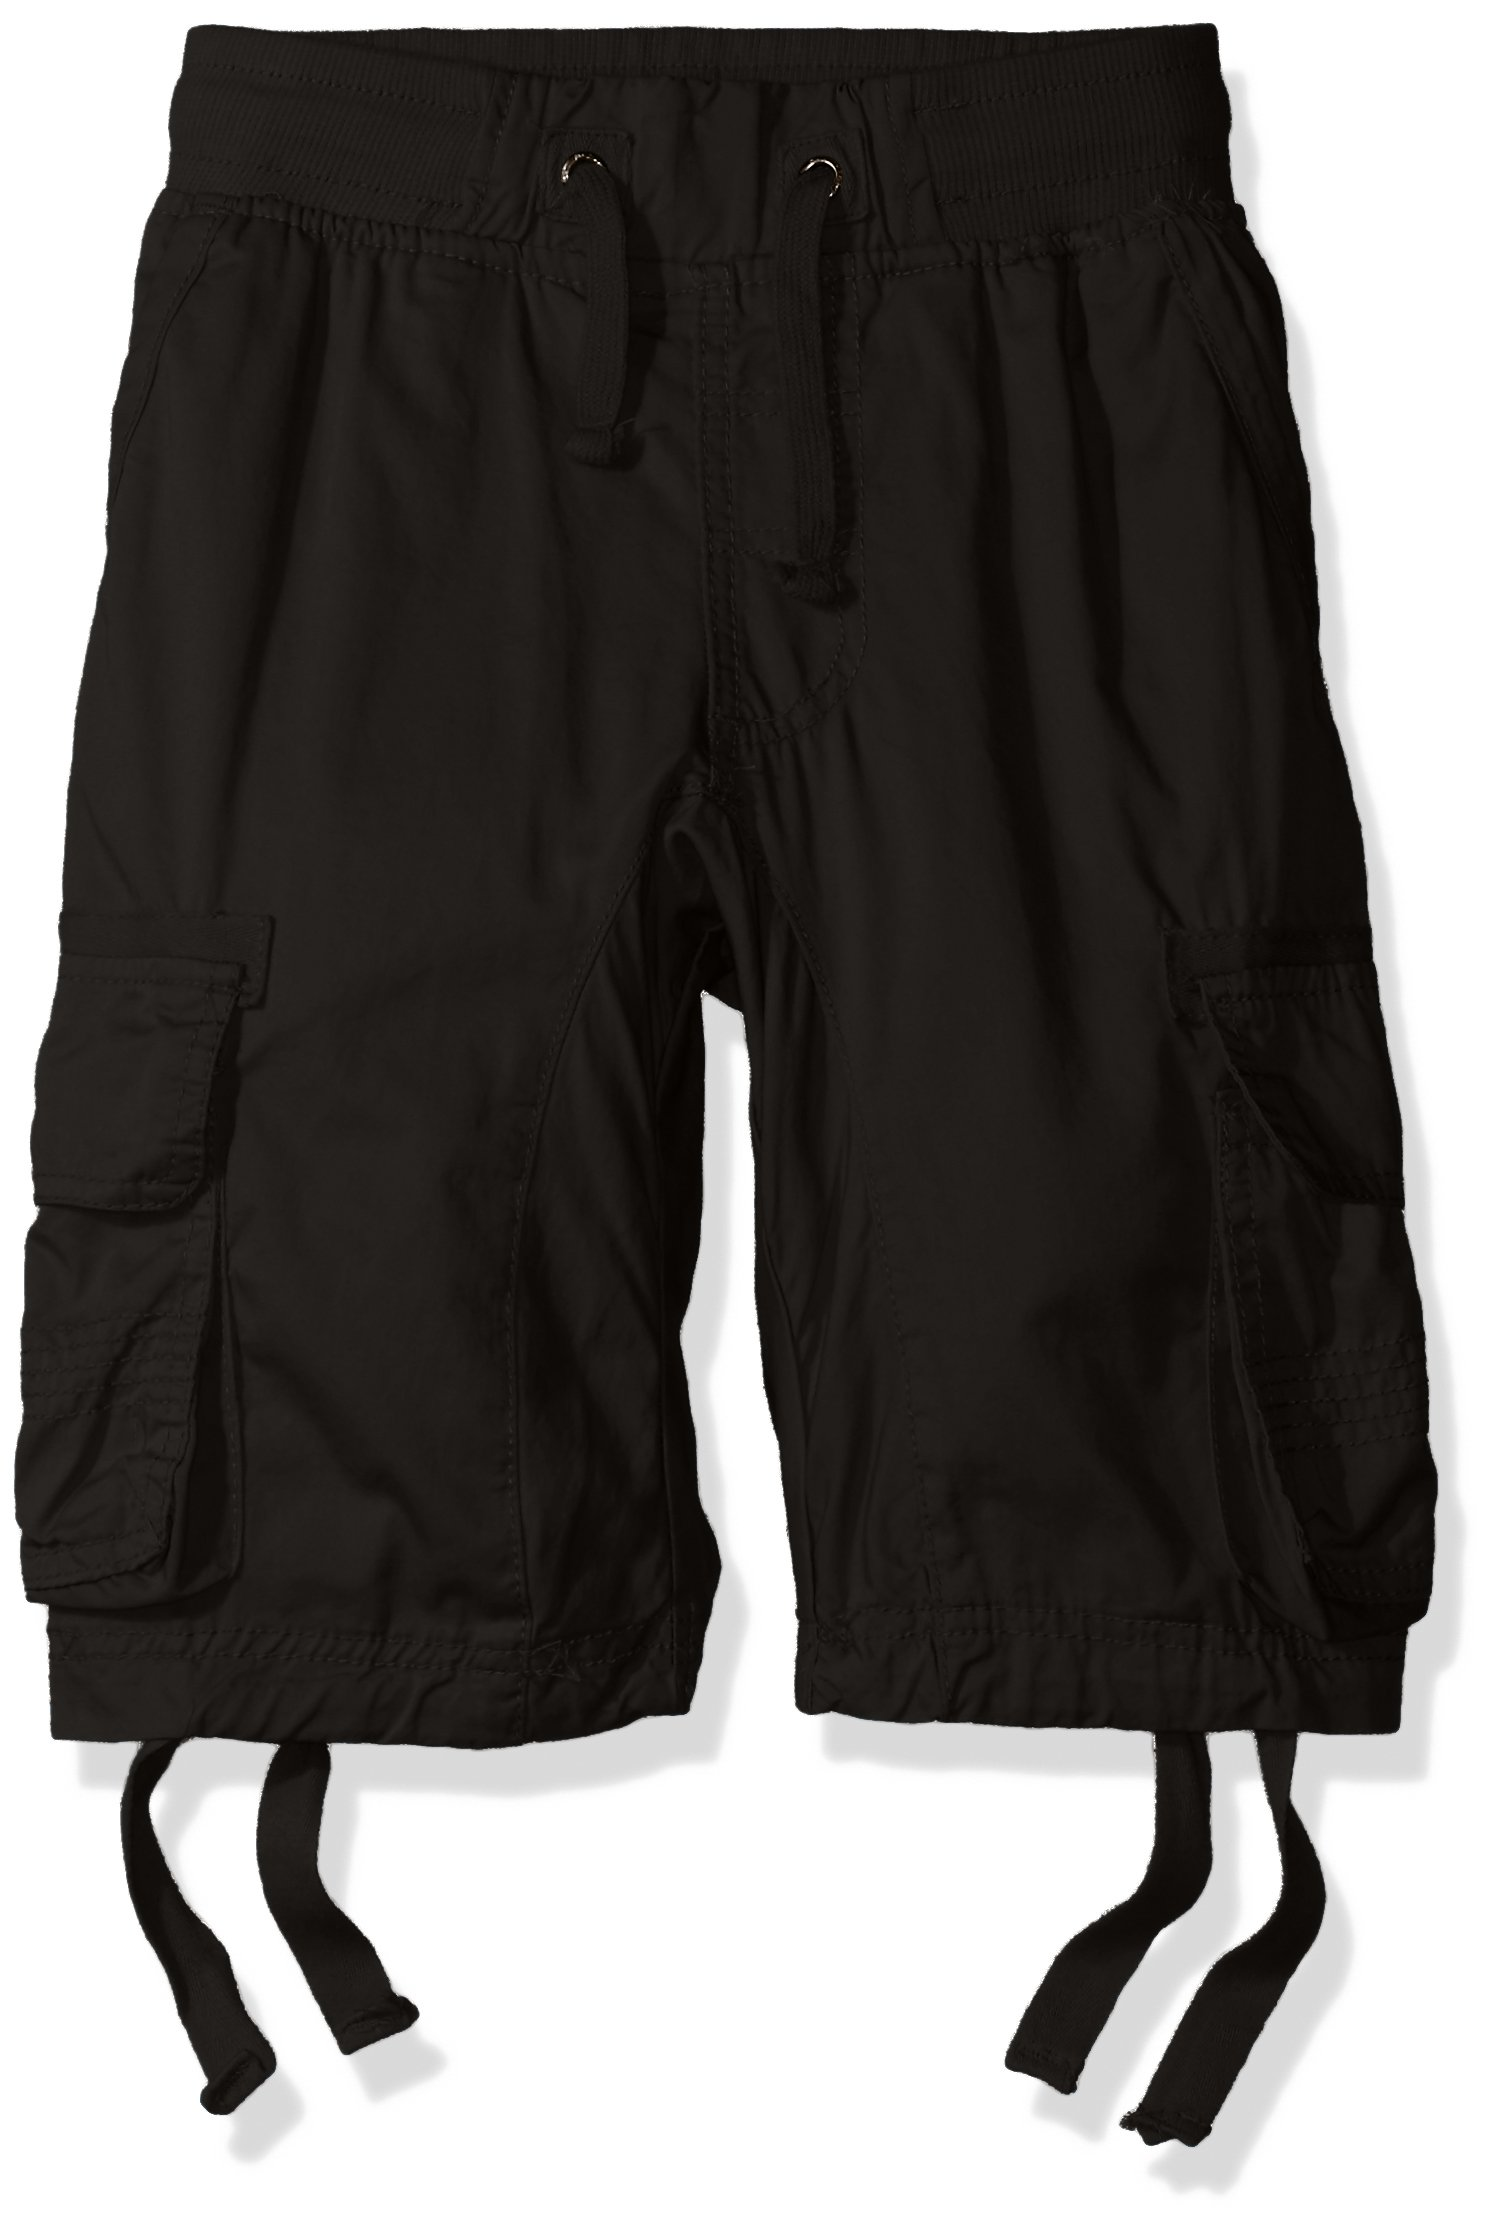 Southpole Big Boys' Jogger Shorts with Cargo Pockets in Basic Solid Colors, Black (New), Large